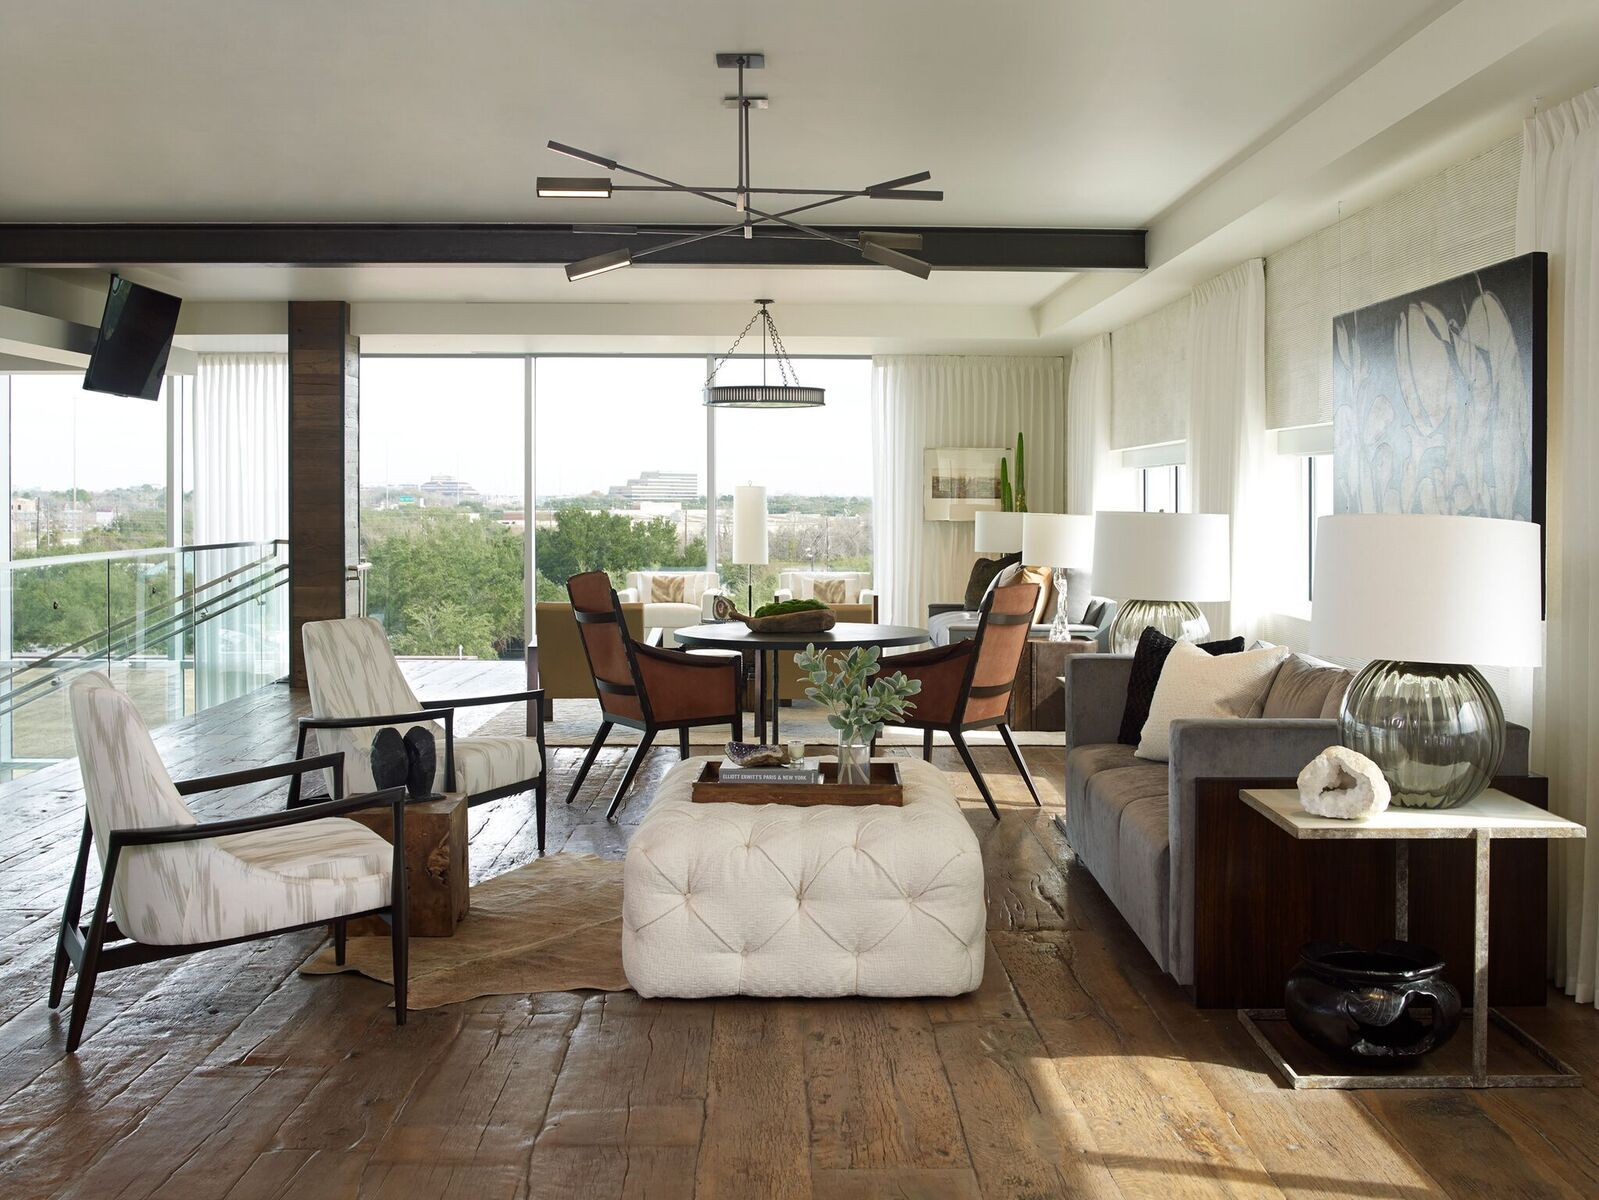 Marie flanigan interiors mastering modern rustic style balance masculine lines with feminine accents